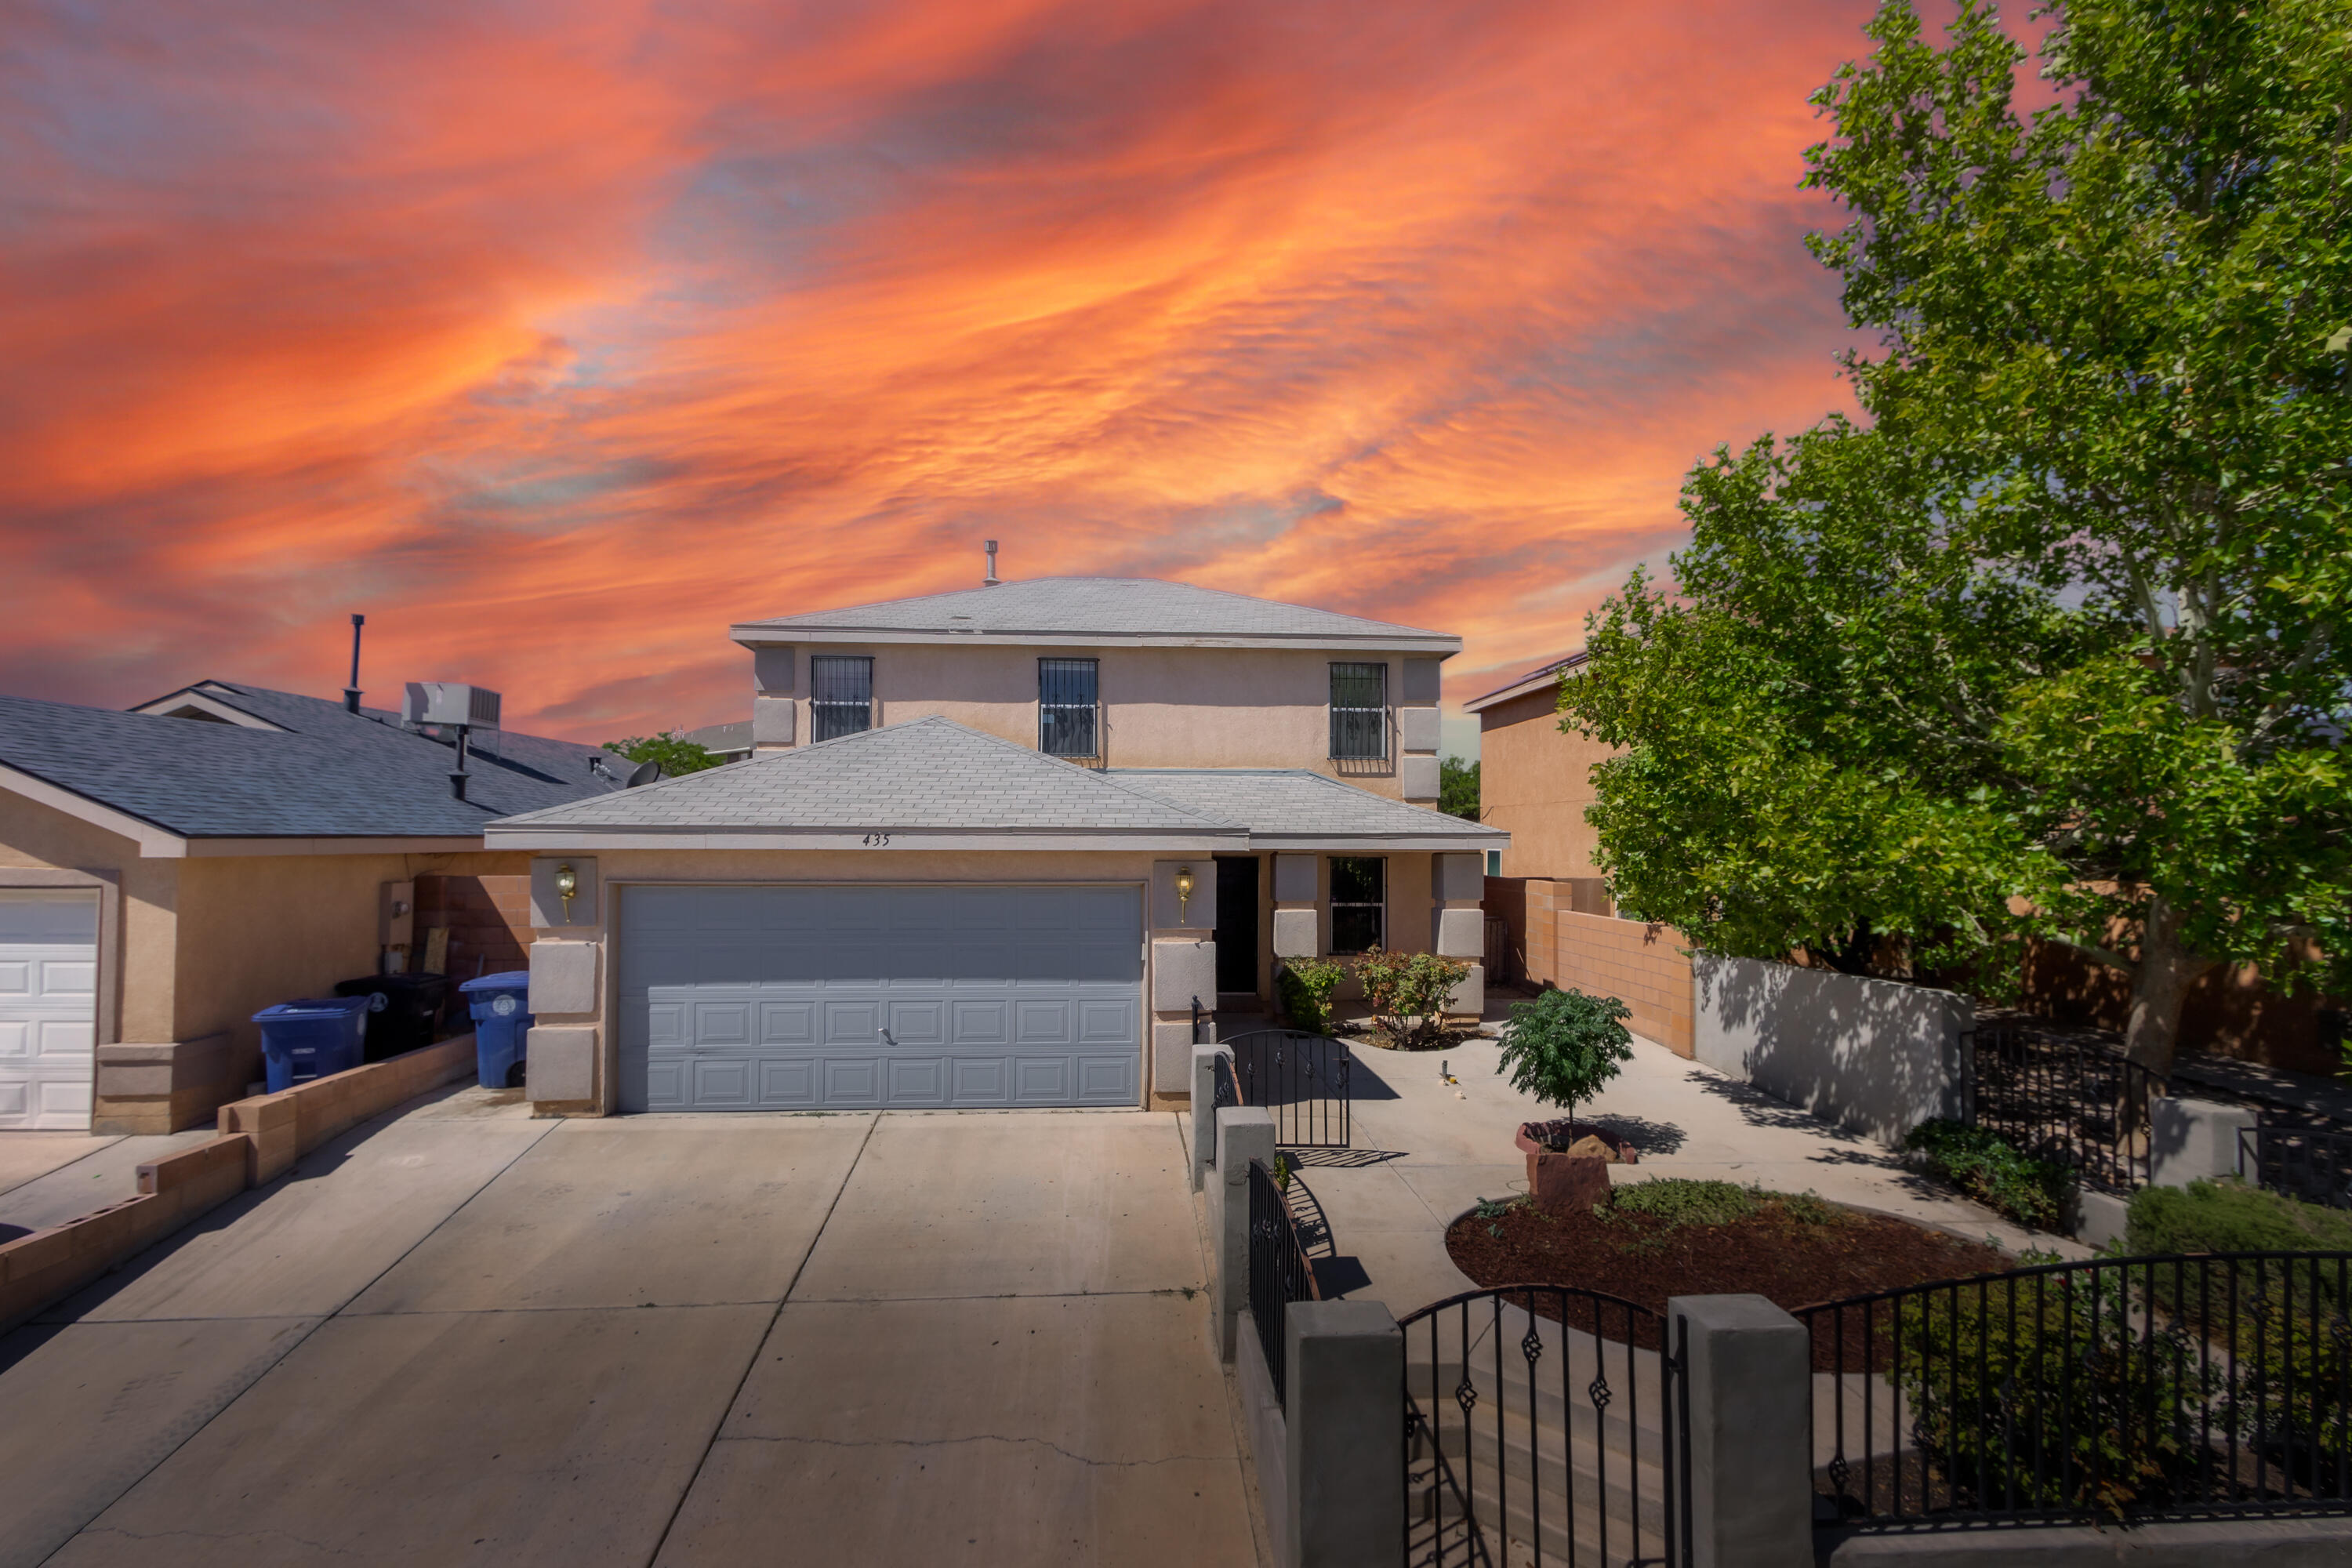 Welcome to this lovely 2 story home! Gated front courtyard provides a bit more privacy. Well maintained with 3 bedrooms and a loft. Open living, kitchen and dining area perfect for entertaining. Kitchen island, stainless steel appliances and large pantry ideal for any chef. Covered back patio and backyard is perfect size for summer BBQ's and entertaining.